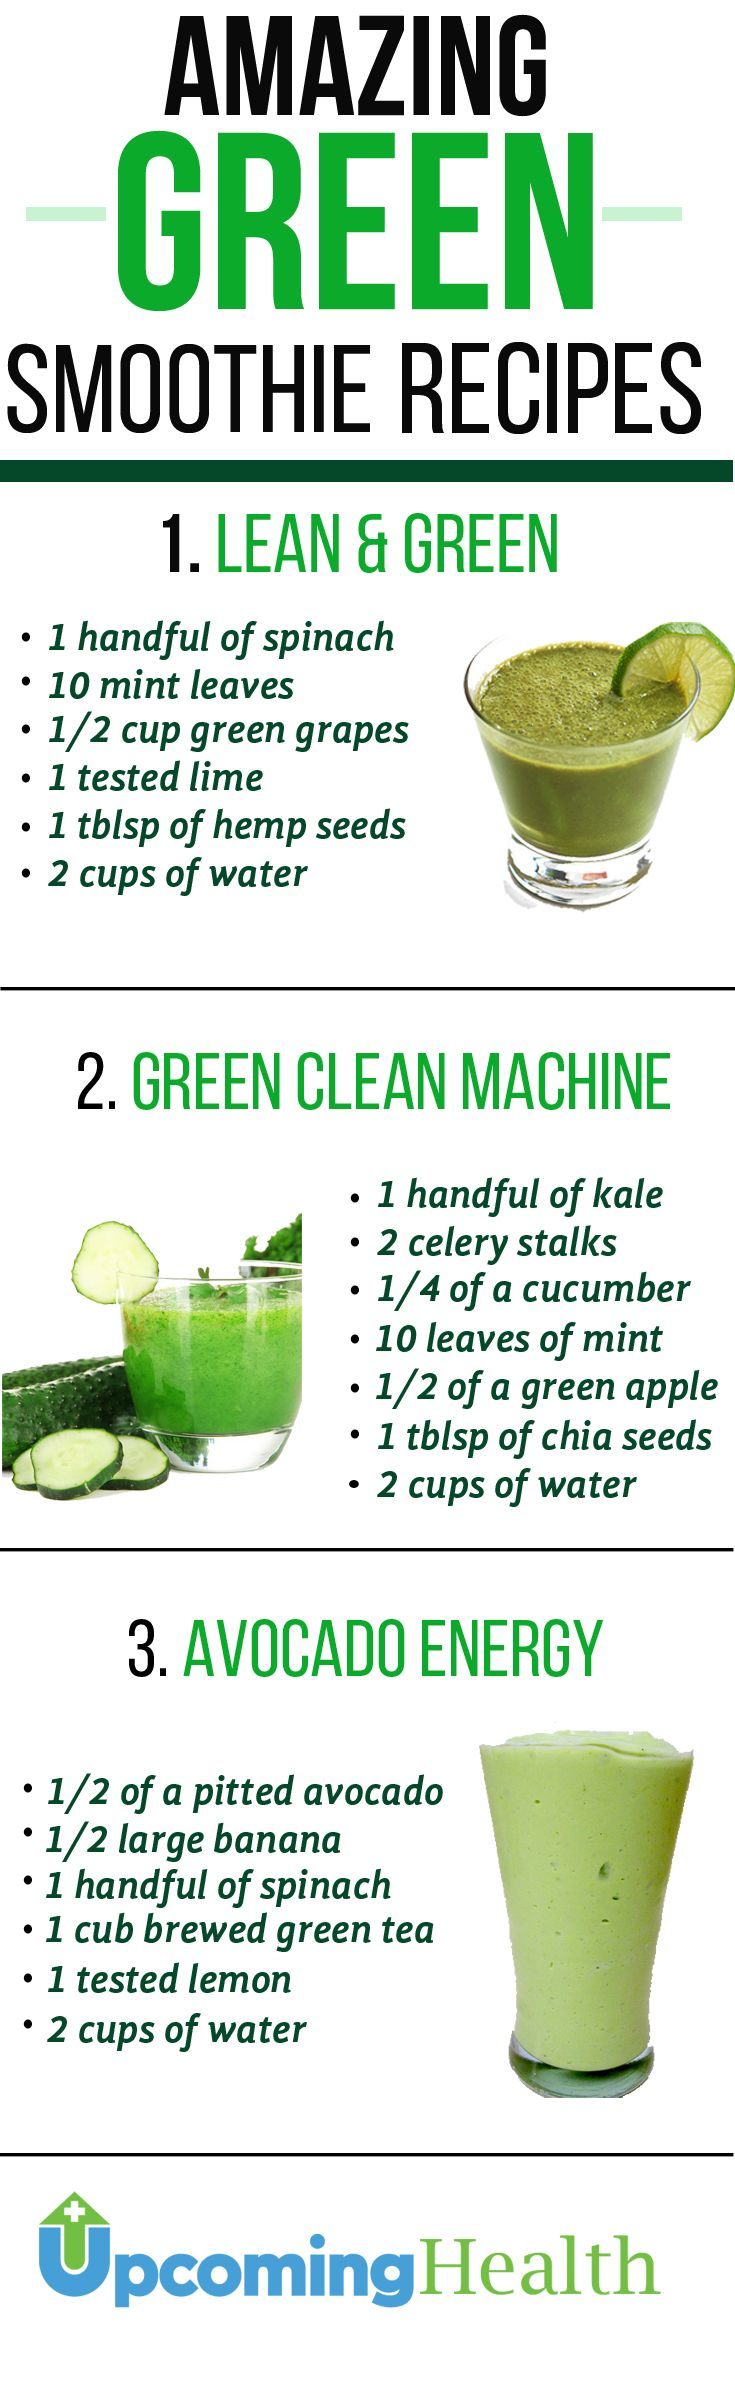 Benefits of green smoothies and how they will change your health. Check out some of the best green smoothie recipes out there!